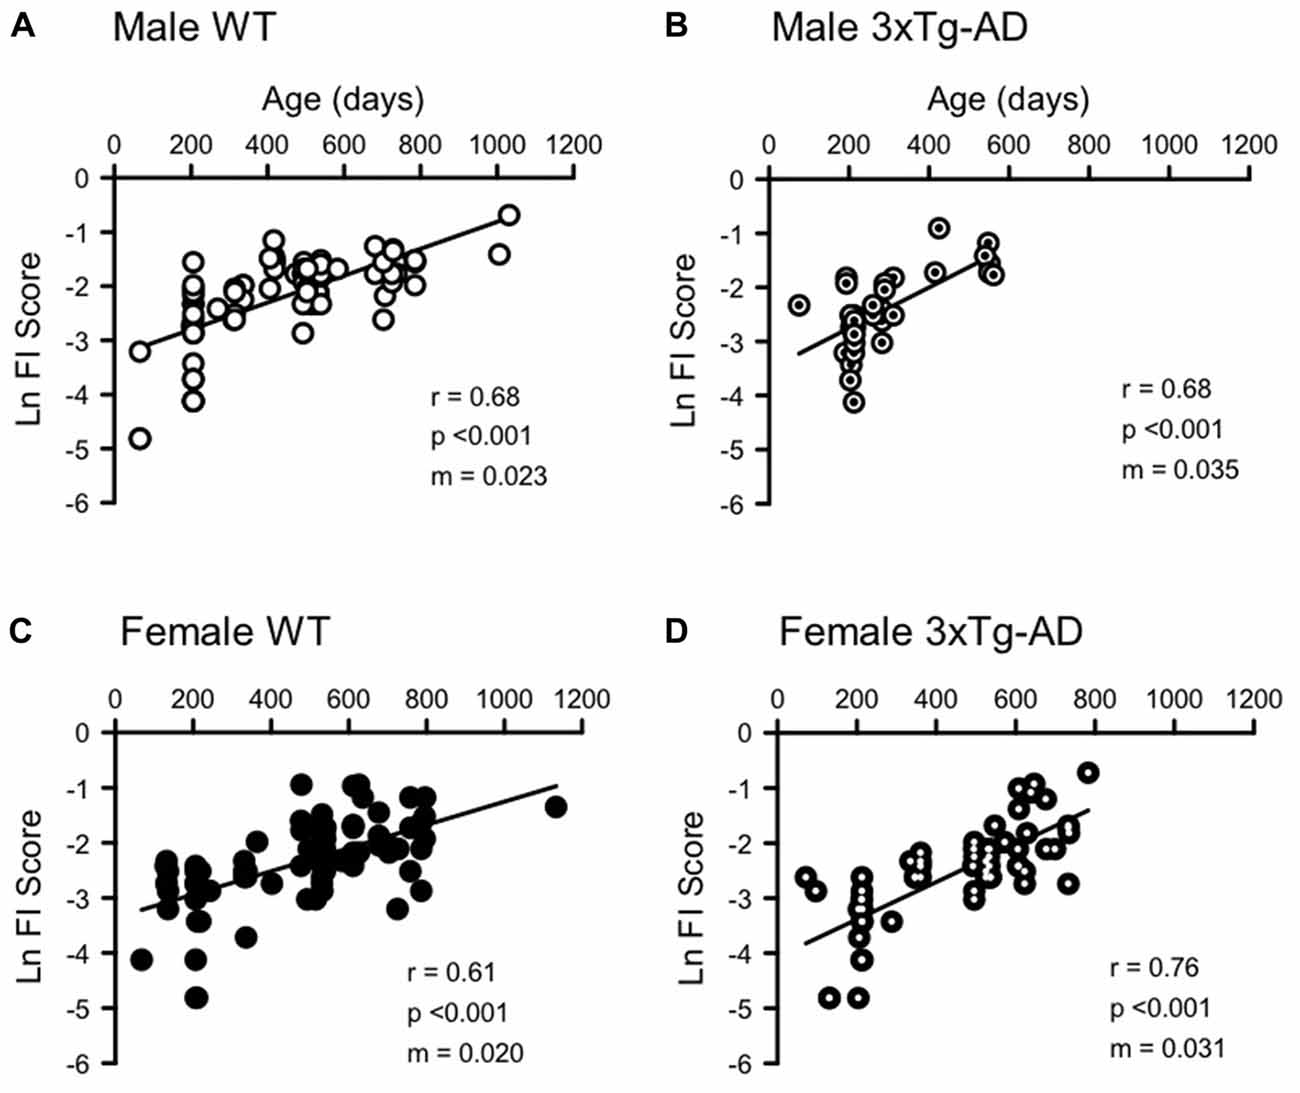 Frontiers Sex Differences In Healthspan Predict Lifespan In The